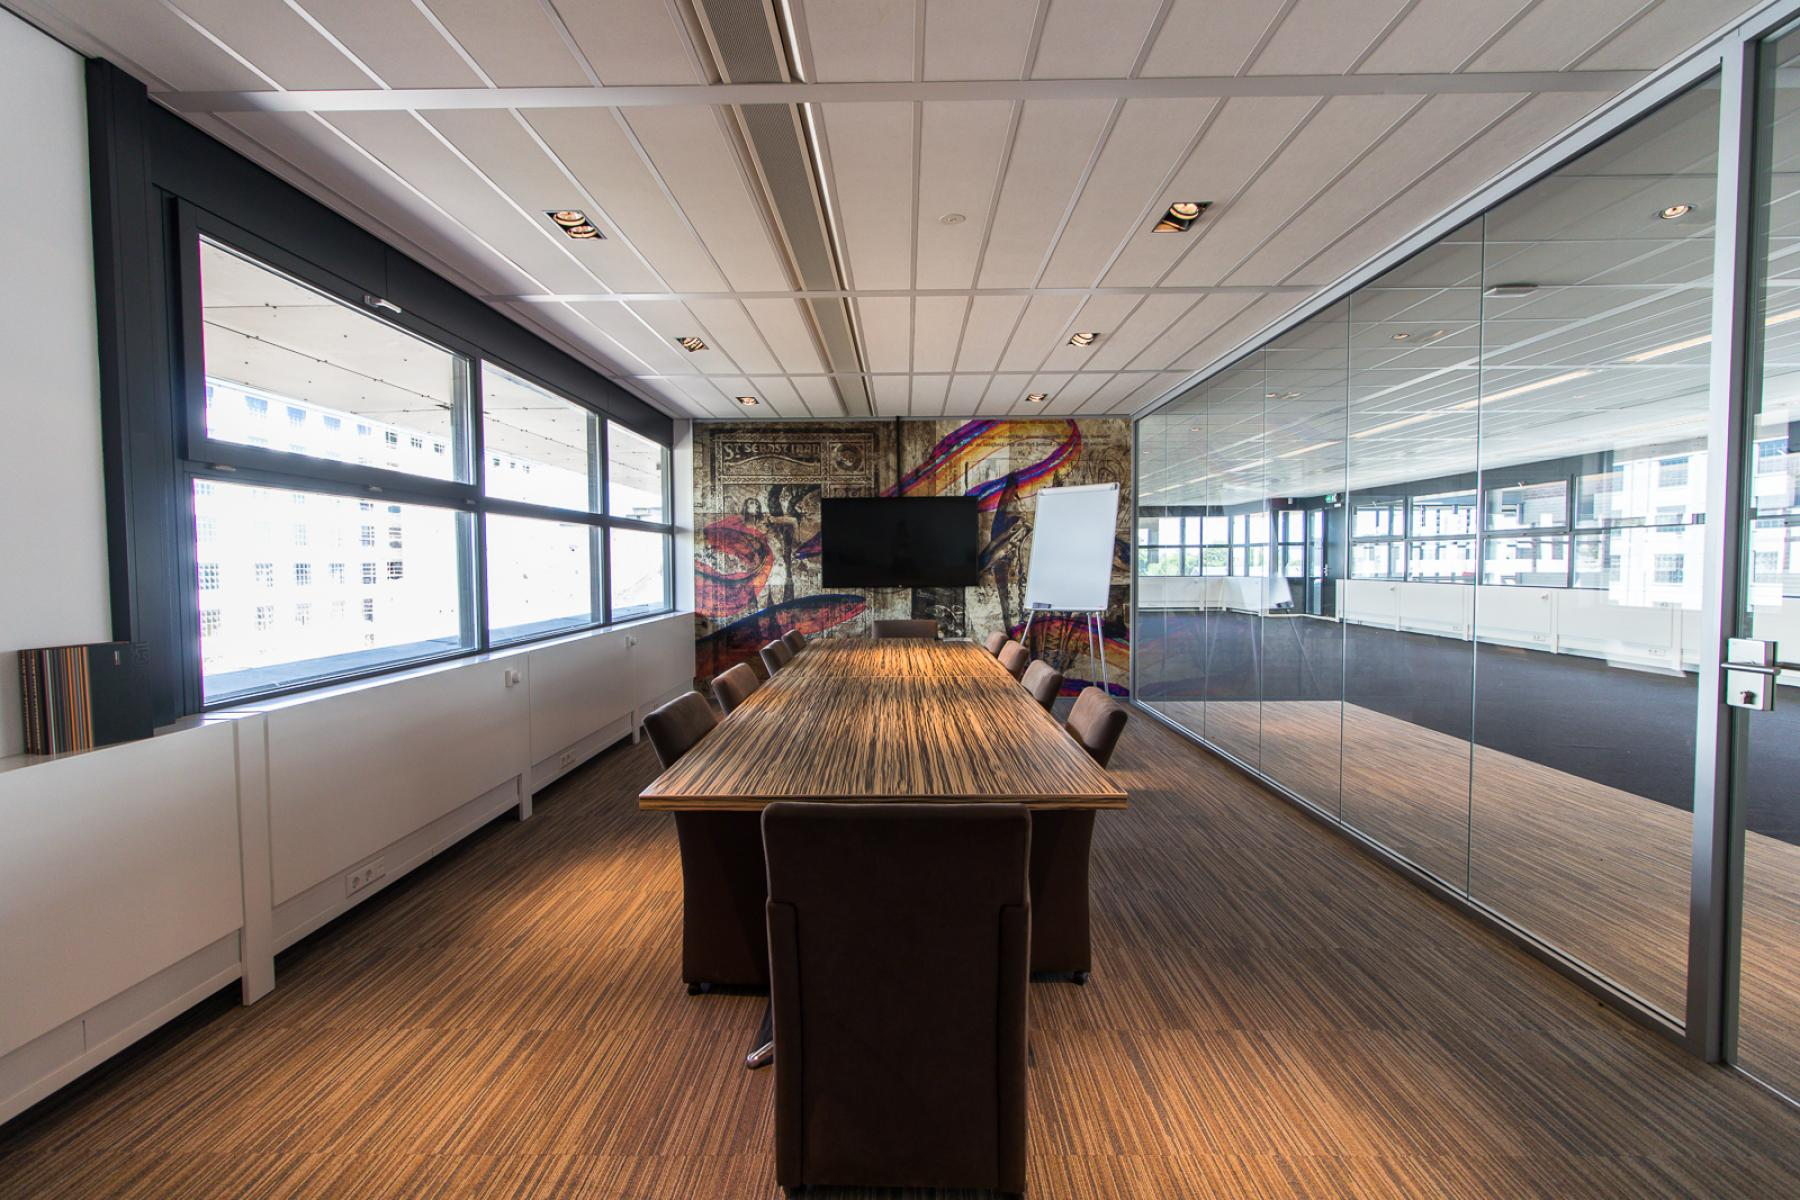 Conference rooms with different sizes available for tenants